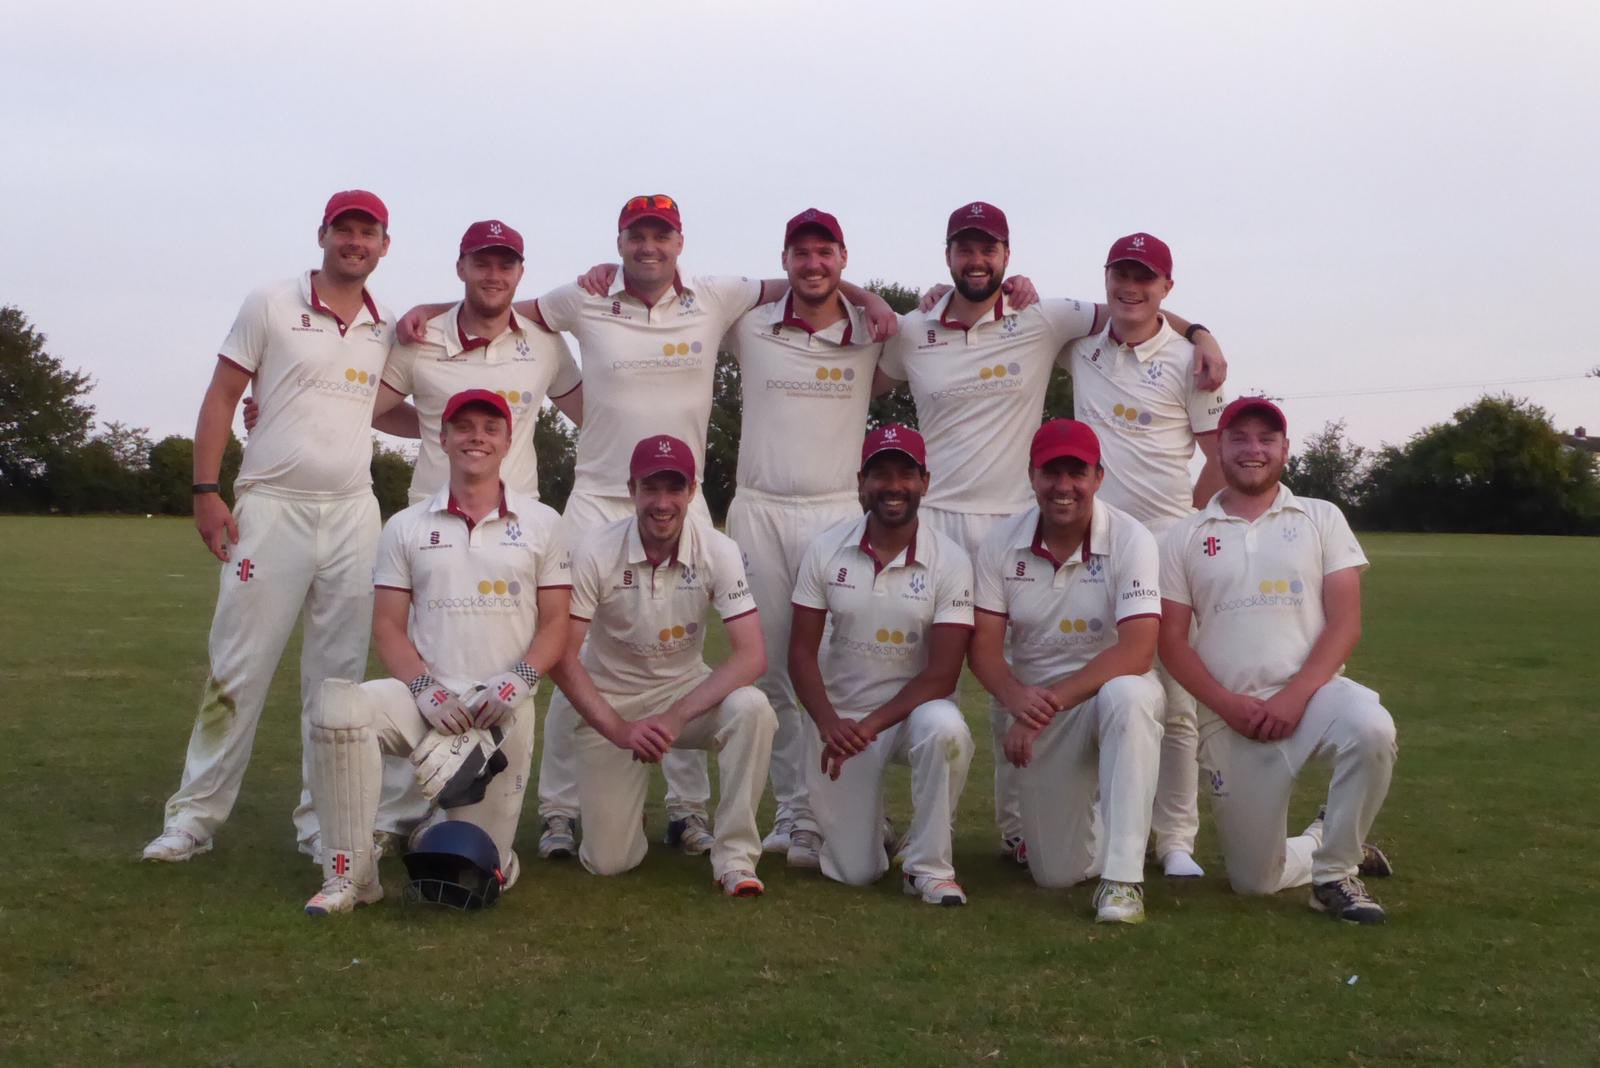 City of Ely Cricket Club win the League